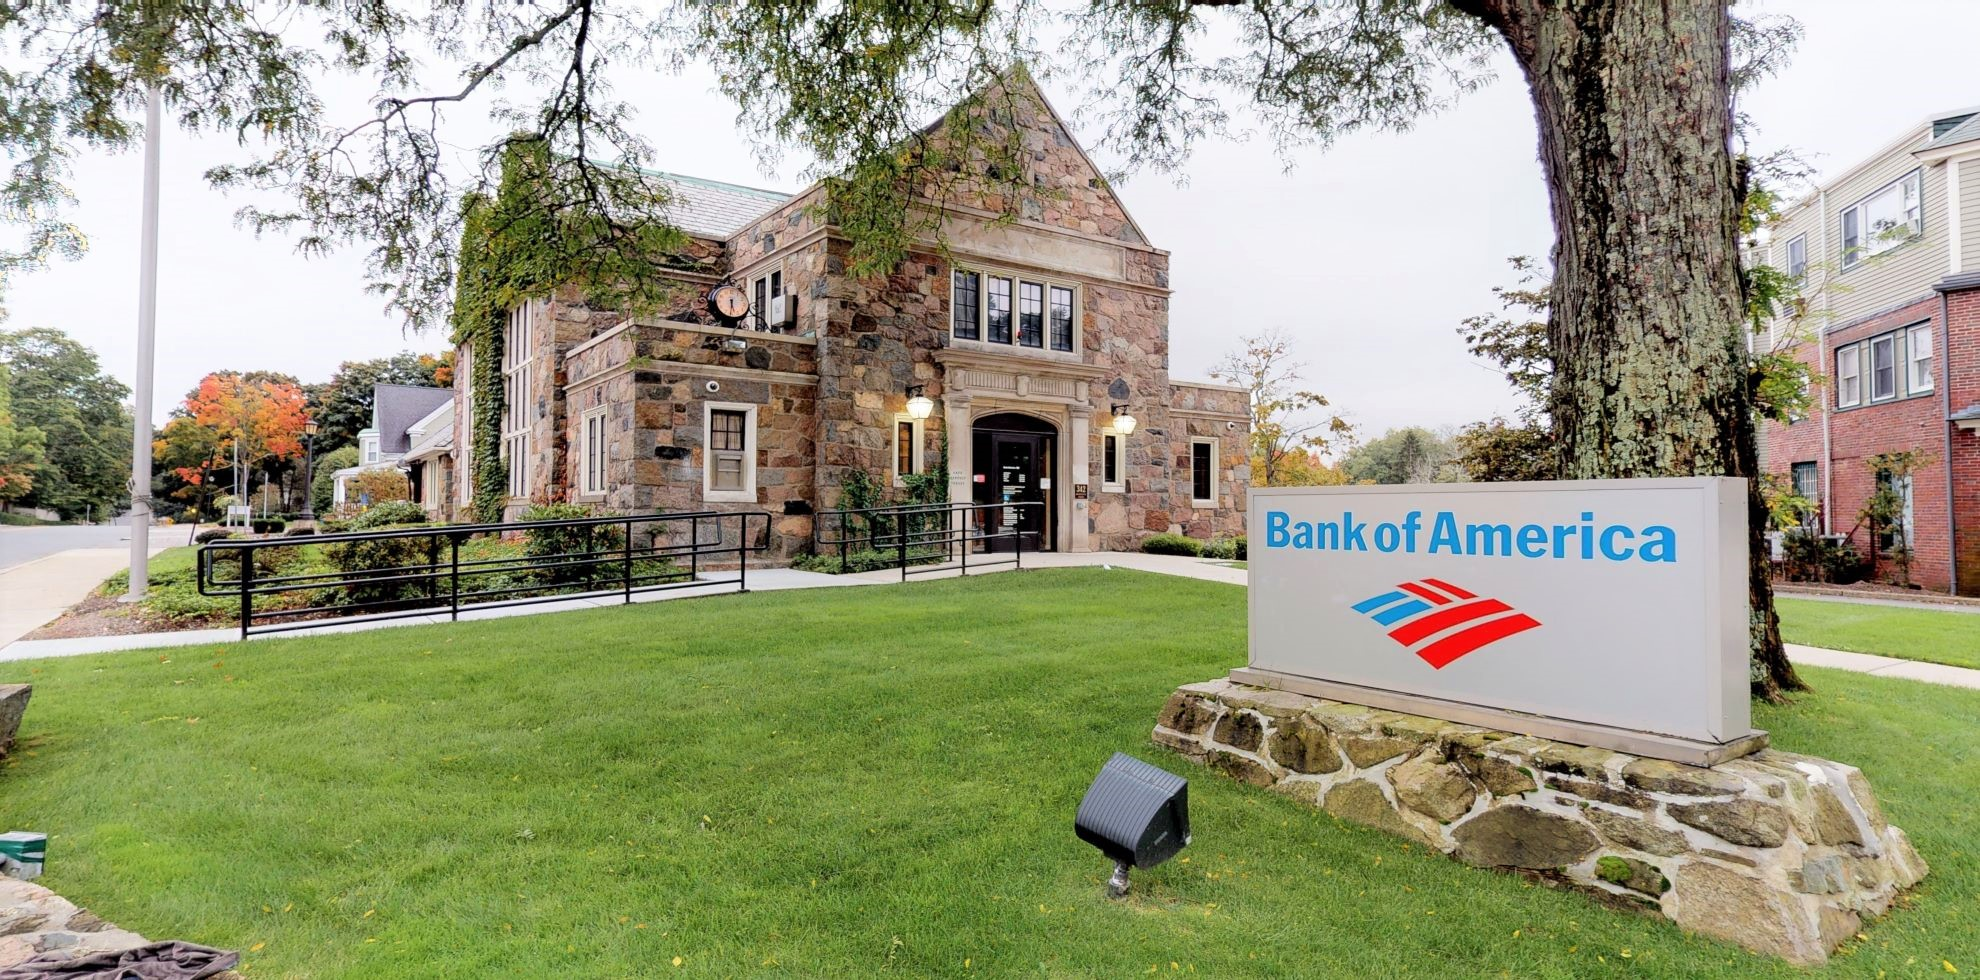 Bank of America financial center with drive-thru ATM | 342 Washington St, Wellesley, MA 02481